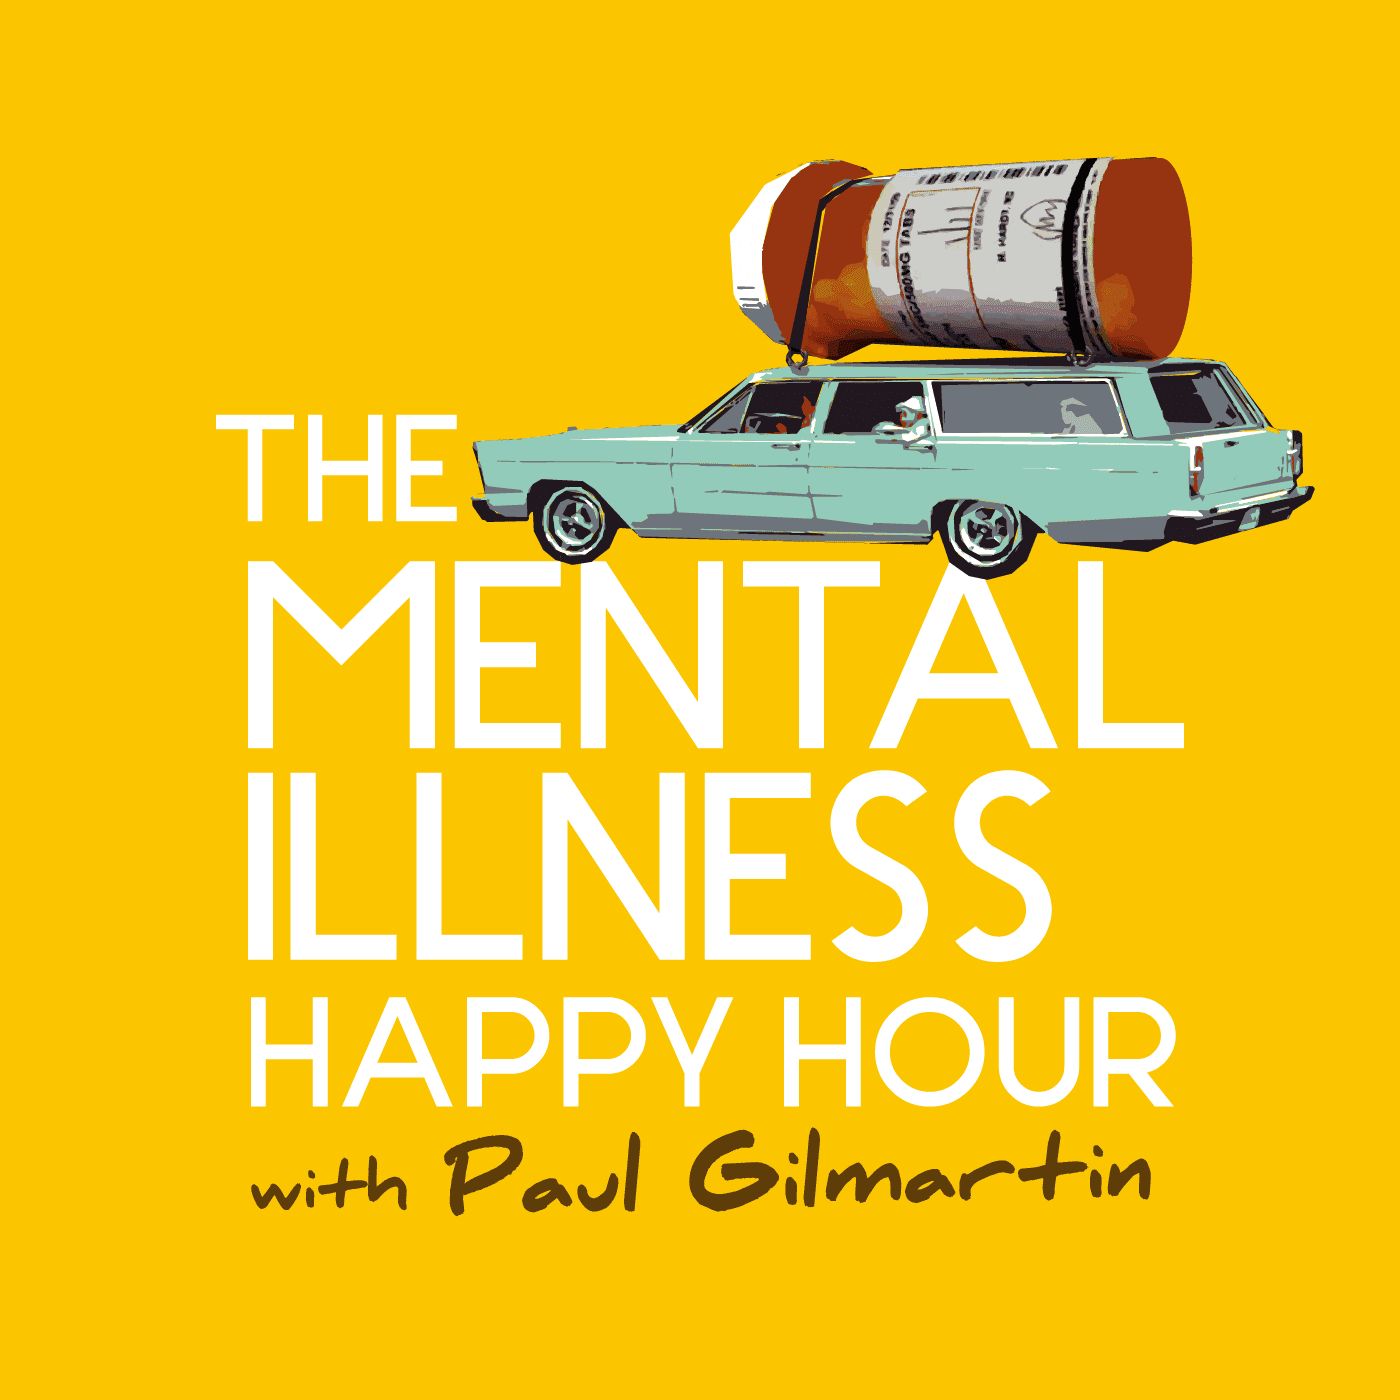 The Mental Illness Happy Hour with Paul Gilmartin podcast